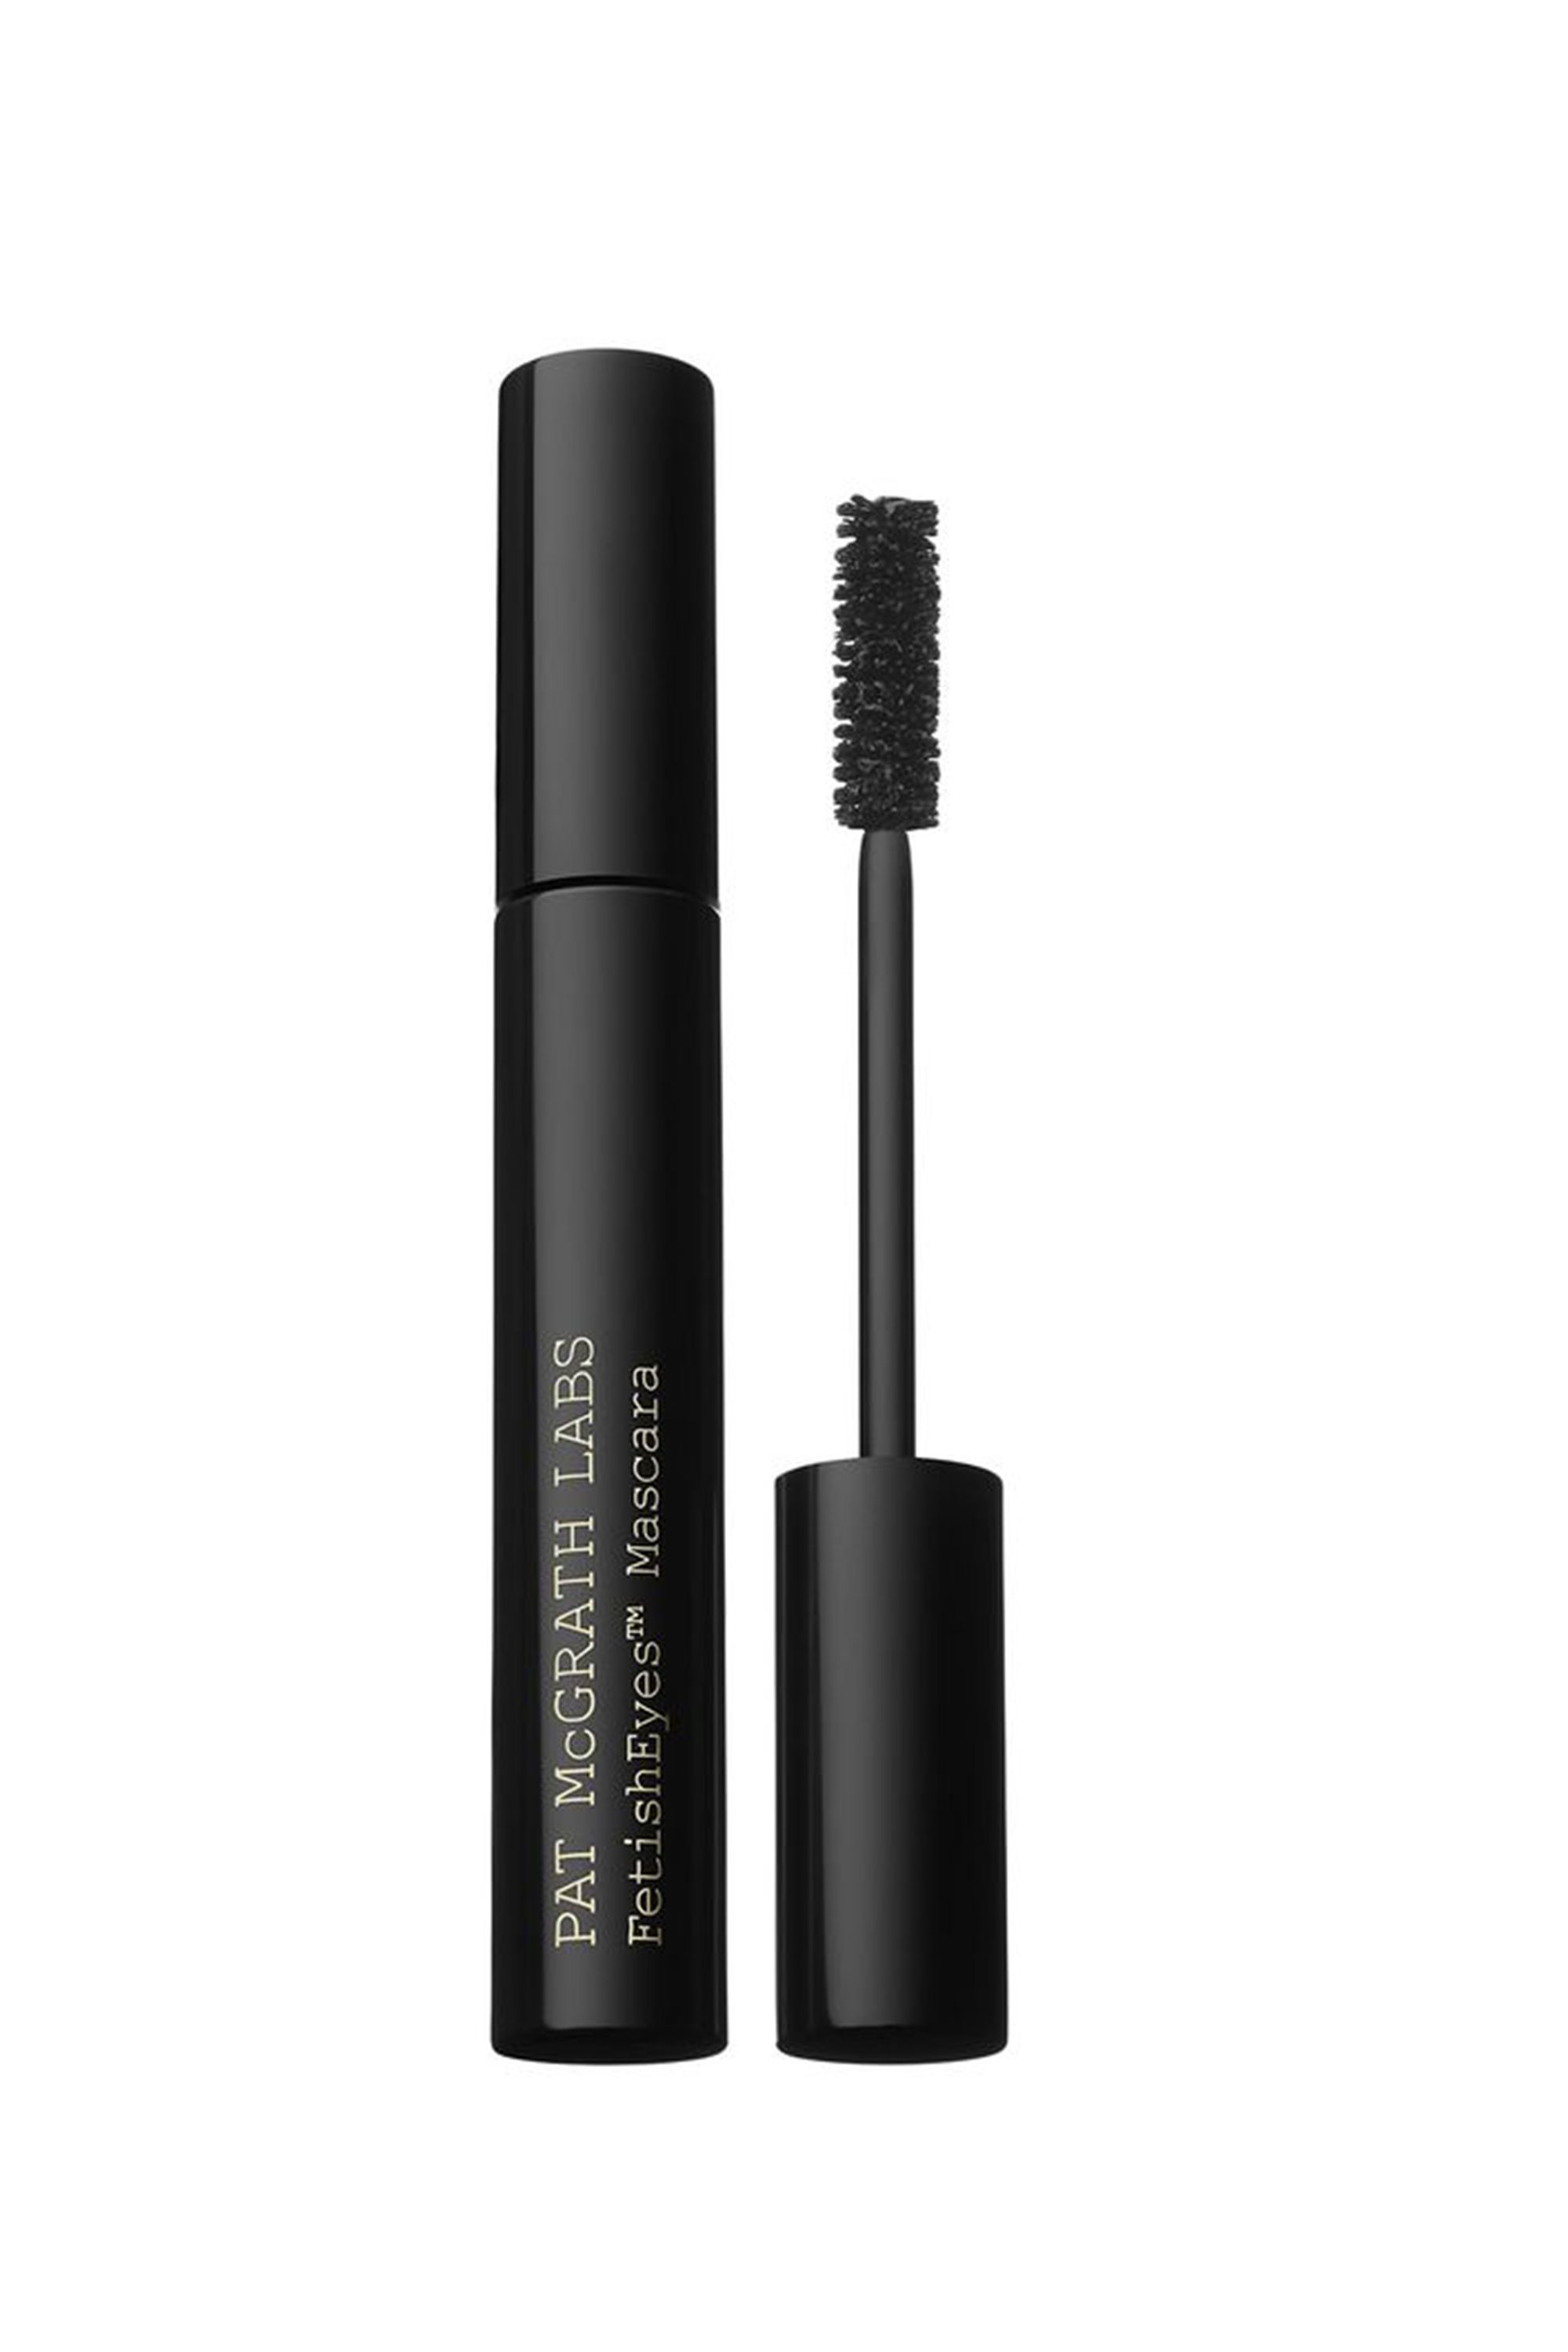 """FetishEyes Mascara PAT McGrath Labs sephora.com $28.00 SHOP NOW """"I'm a sucker for anything Pat McGrath and I'm here to tell you it all lives up to the hype. This mascara is a life and game changer. I'm actually obsessed. It lengthens, curls, fluffs, brings the drama, and is perfect. I want to buy 1,000 more tubes because I'm so obsessed."""" — Chloe Hall, Special Projects Editor and Producer"""